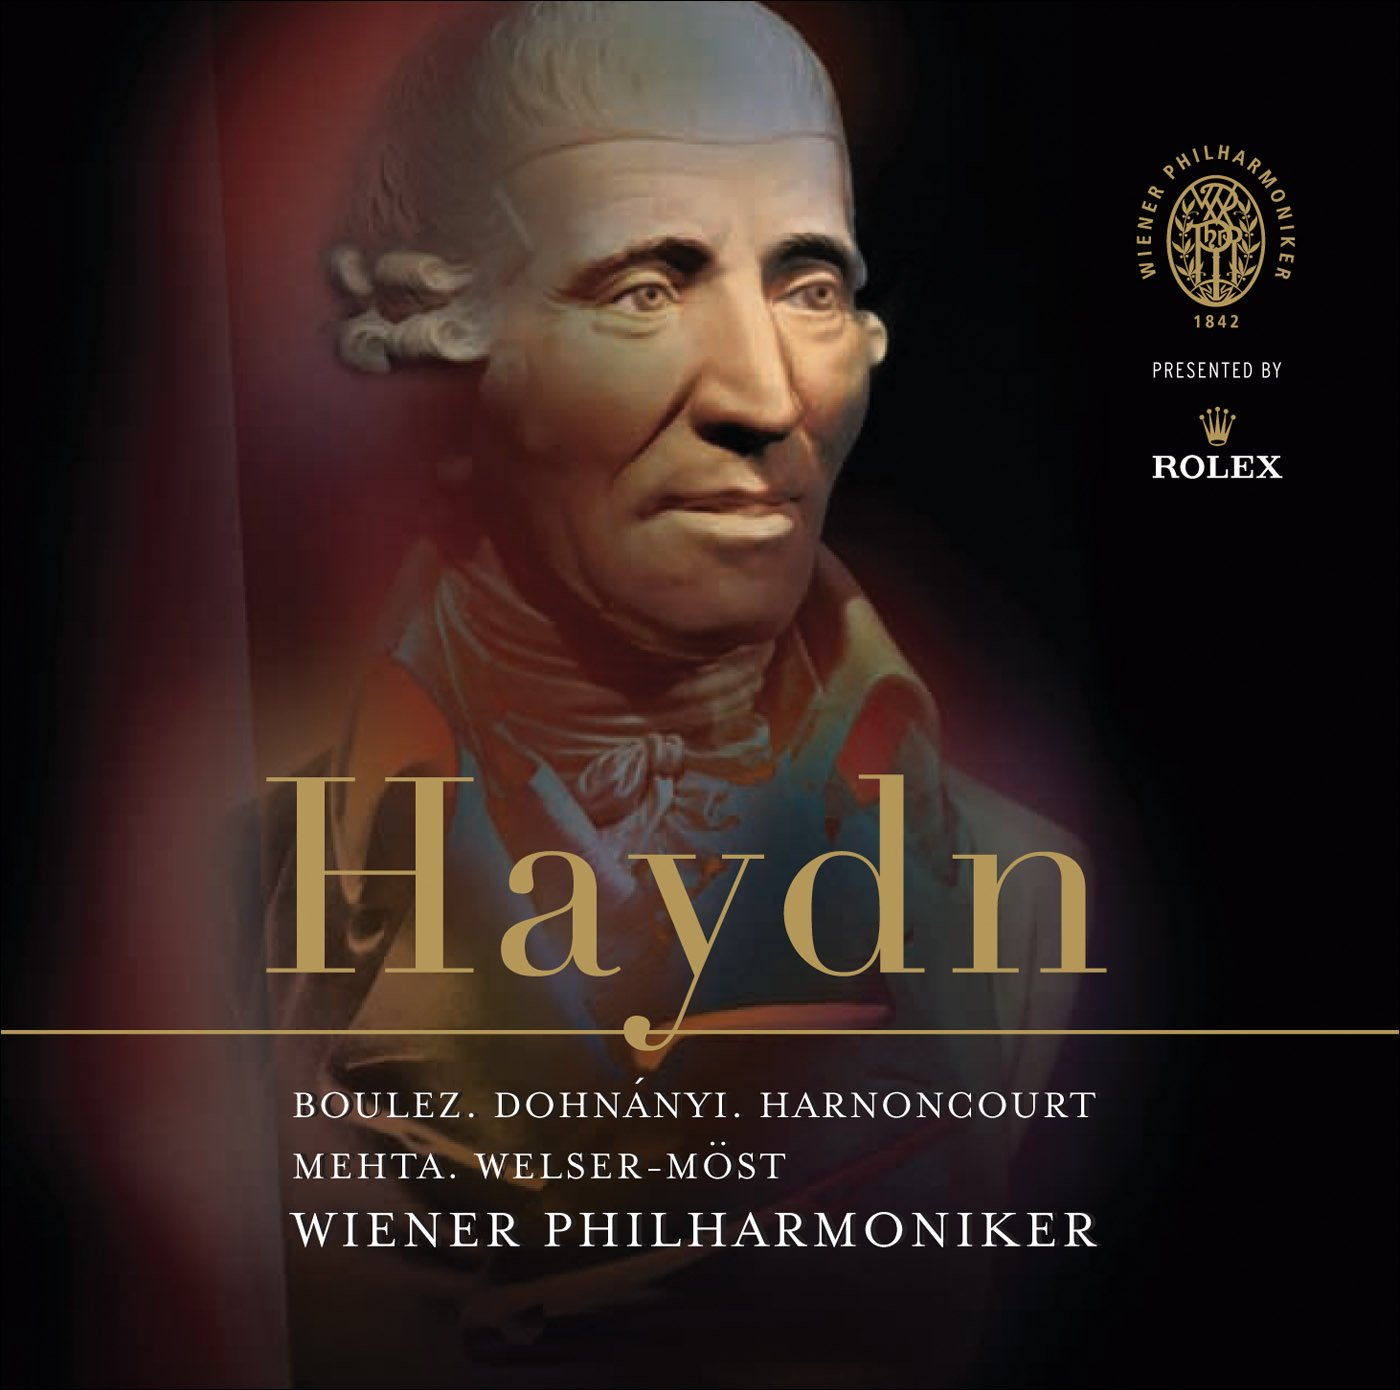 HAYDN: SYMPHONIES - BOULEZ, MEHTA, HARNONCOURT, DOHNANYI, WELSER-MOST, VIENNA PHILHARMONIC (3 CDS)